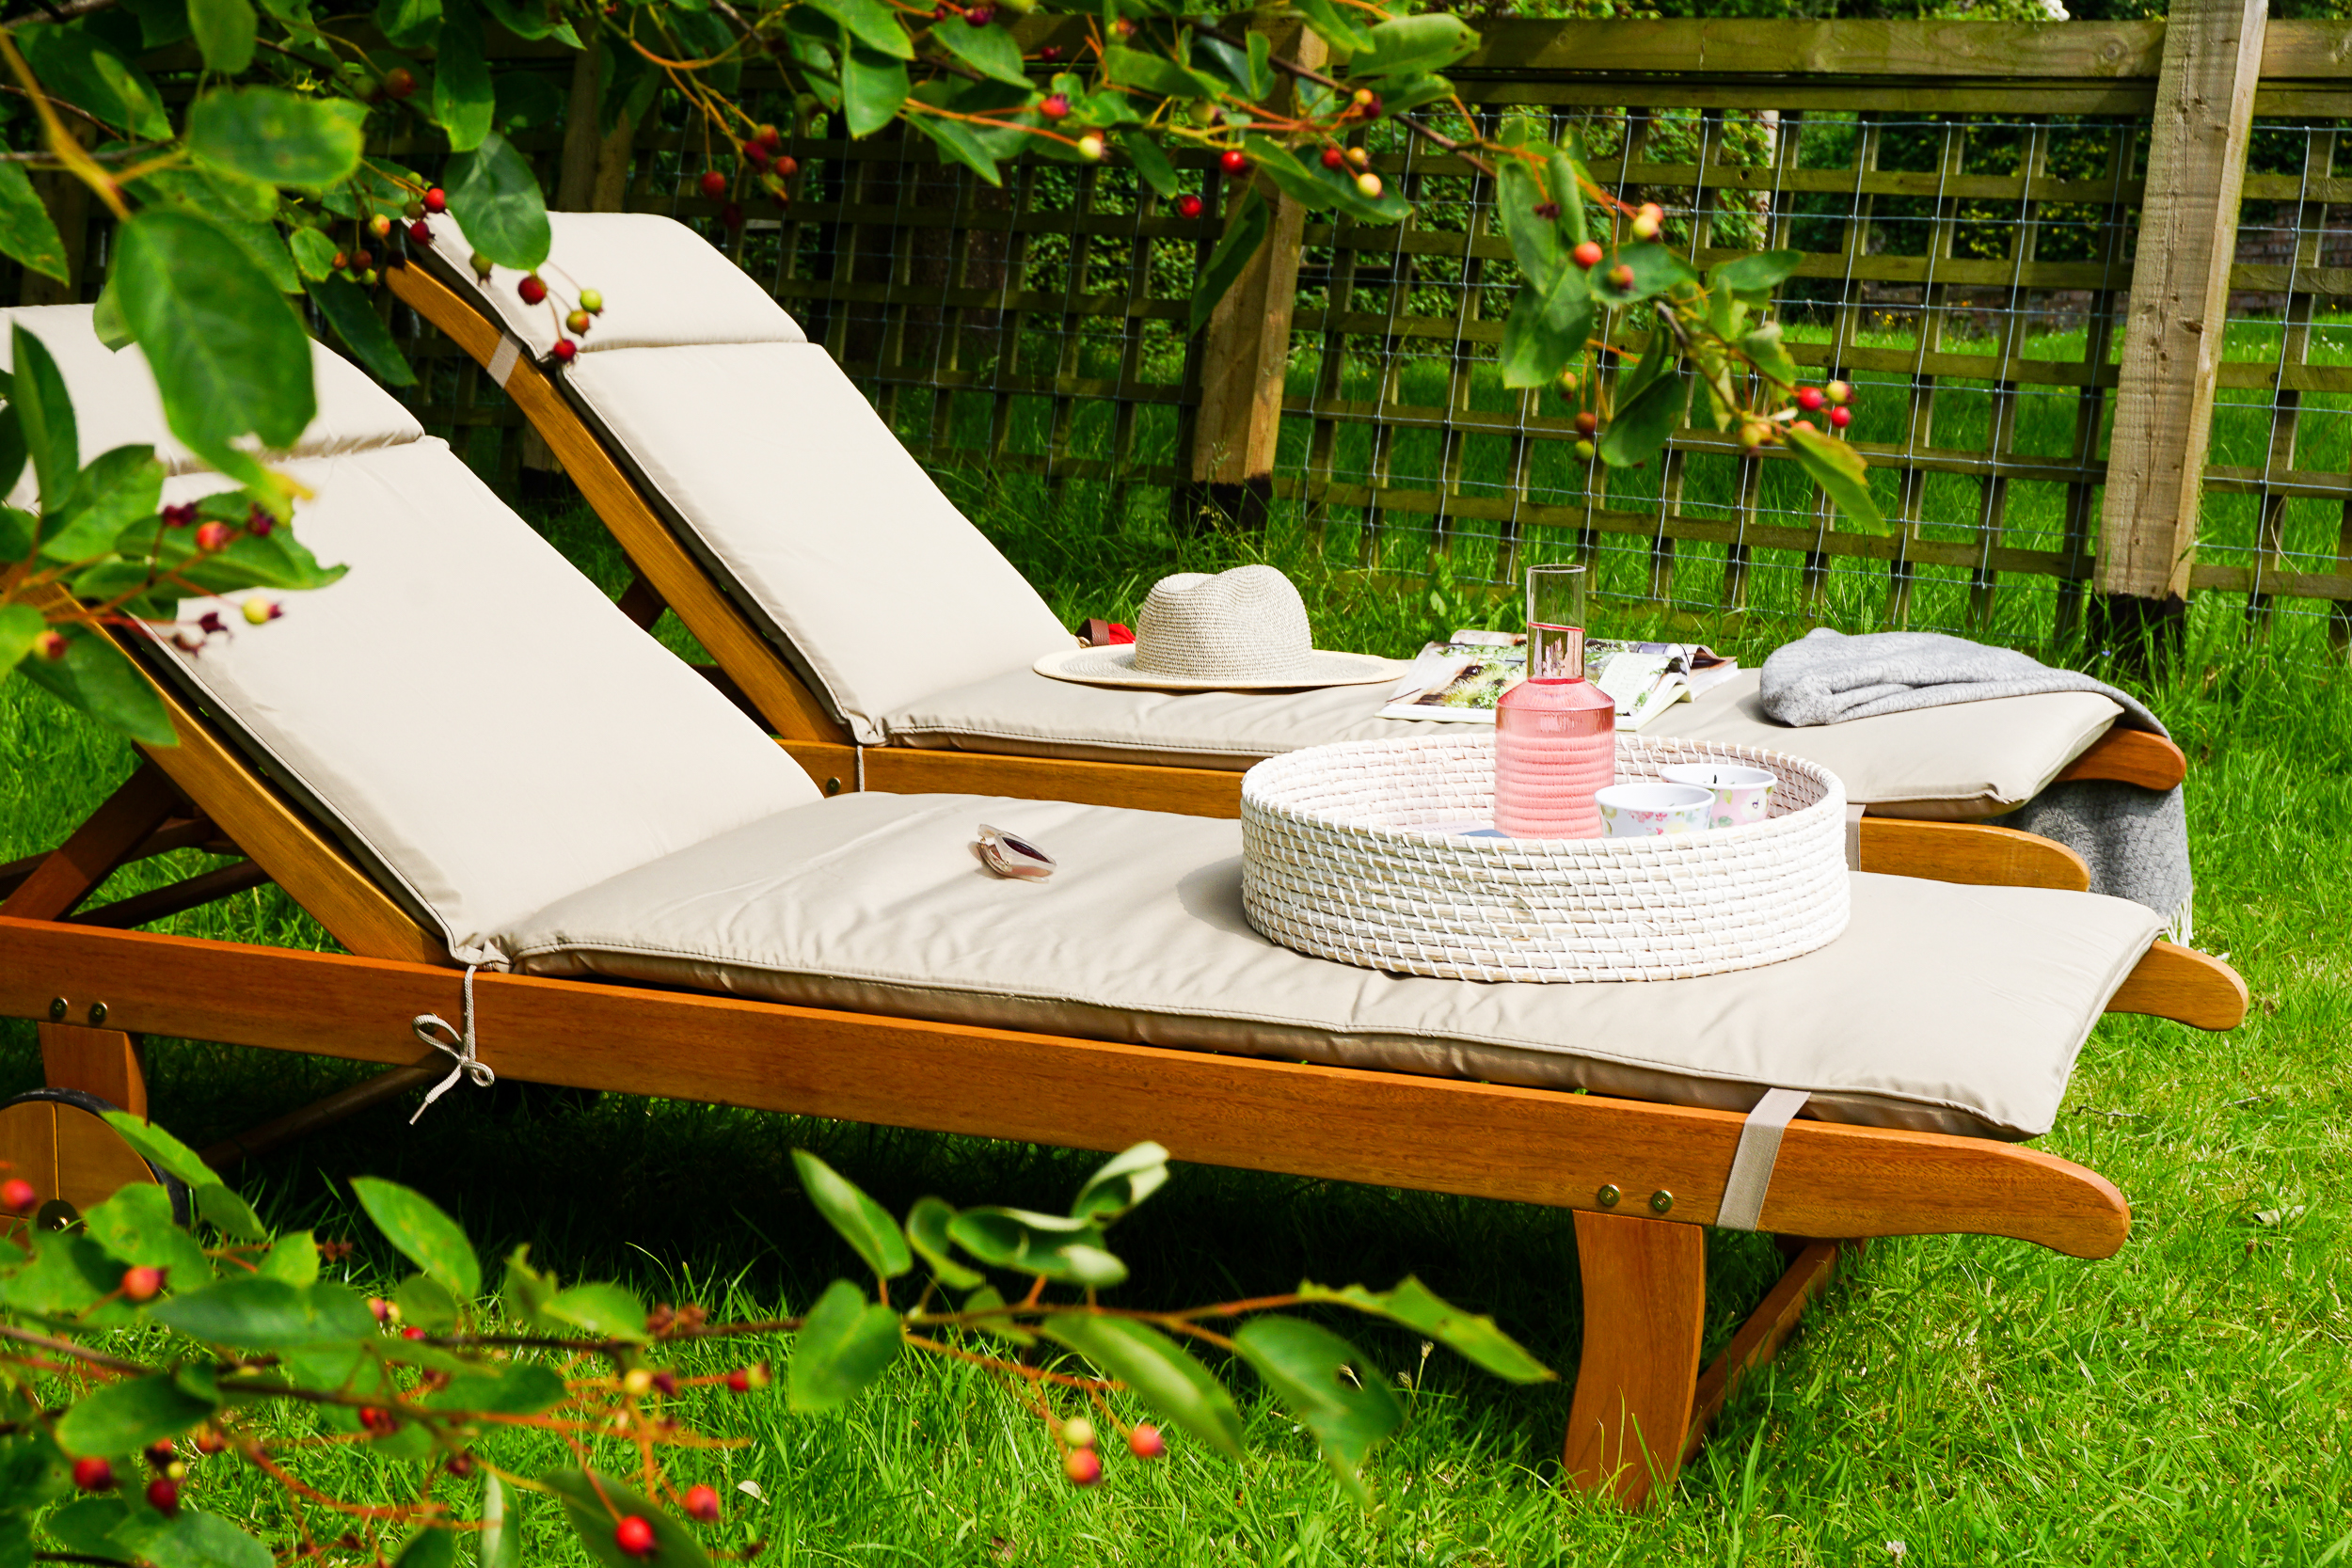 Patio plans and finding a secluded spot for my new sun loungers